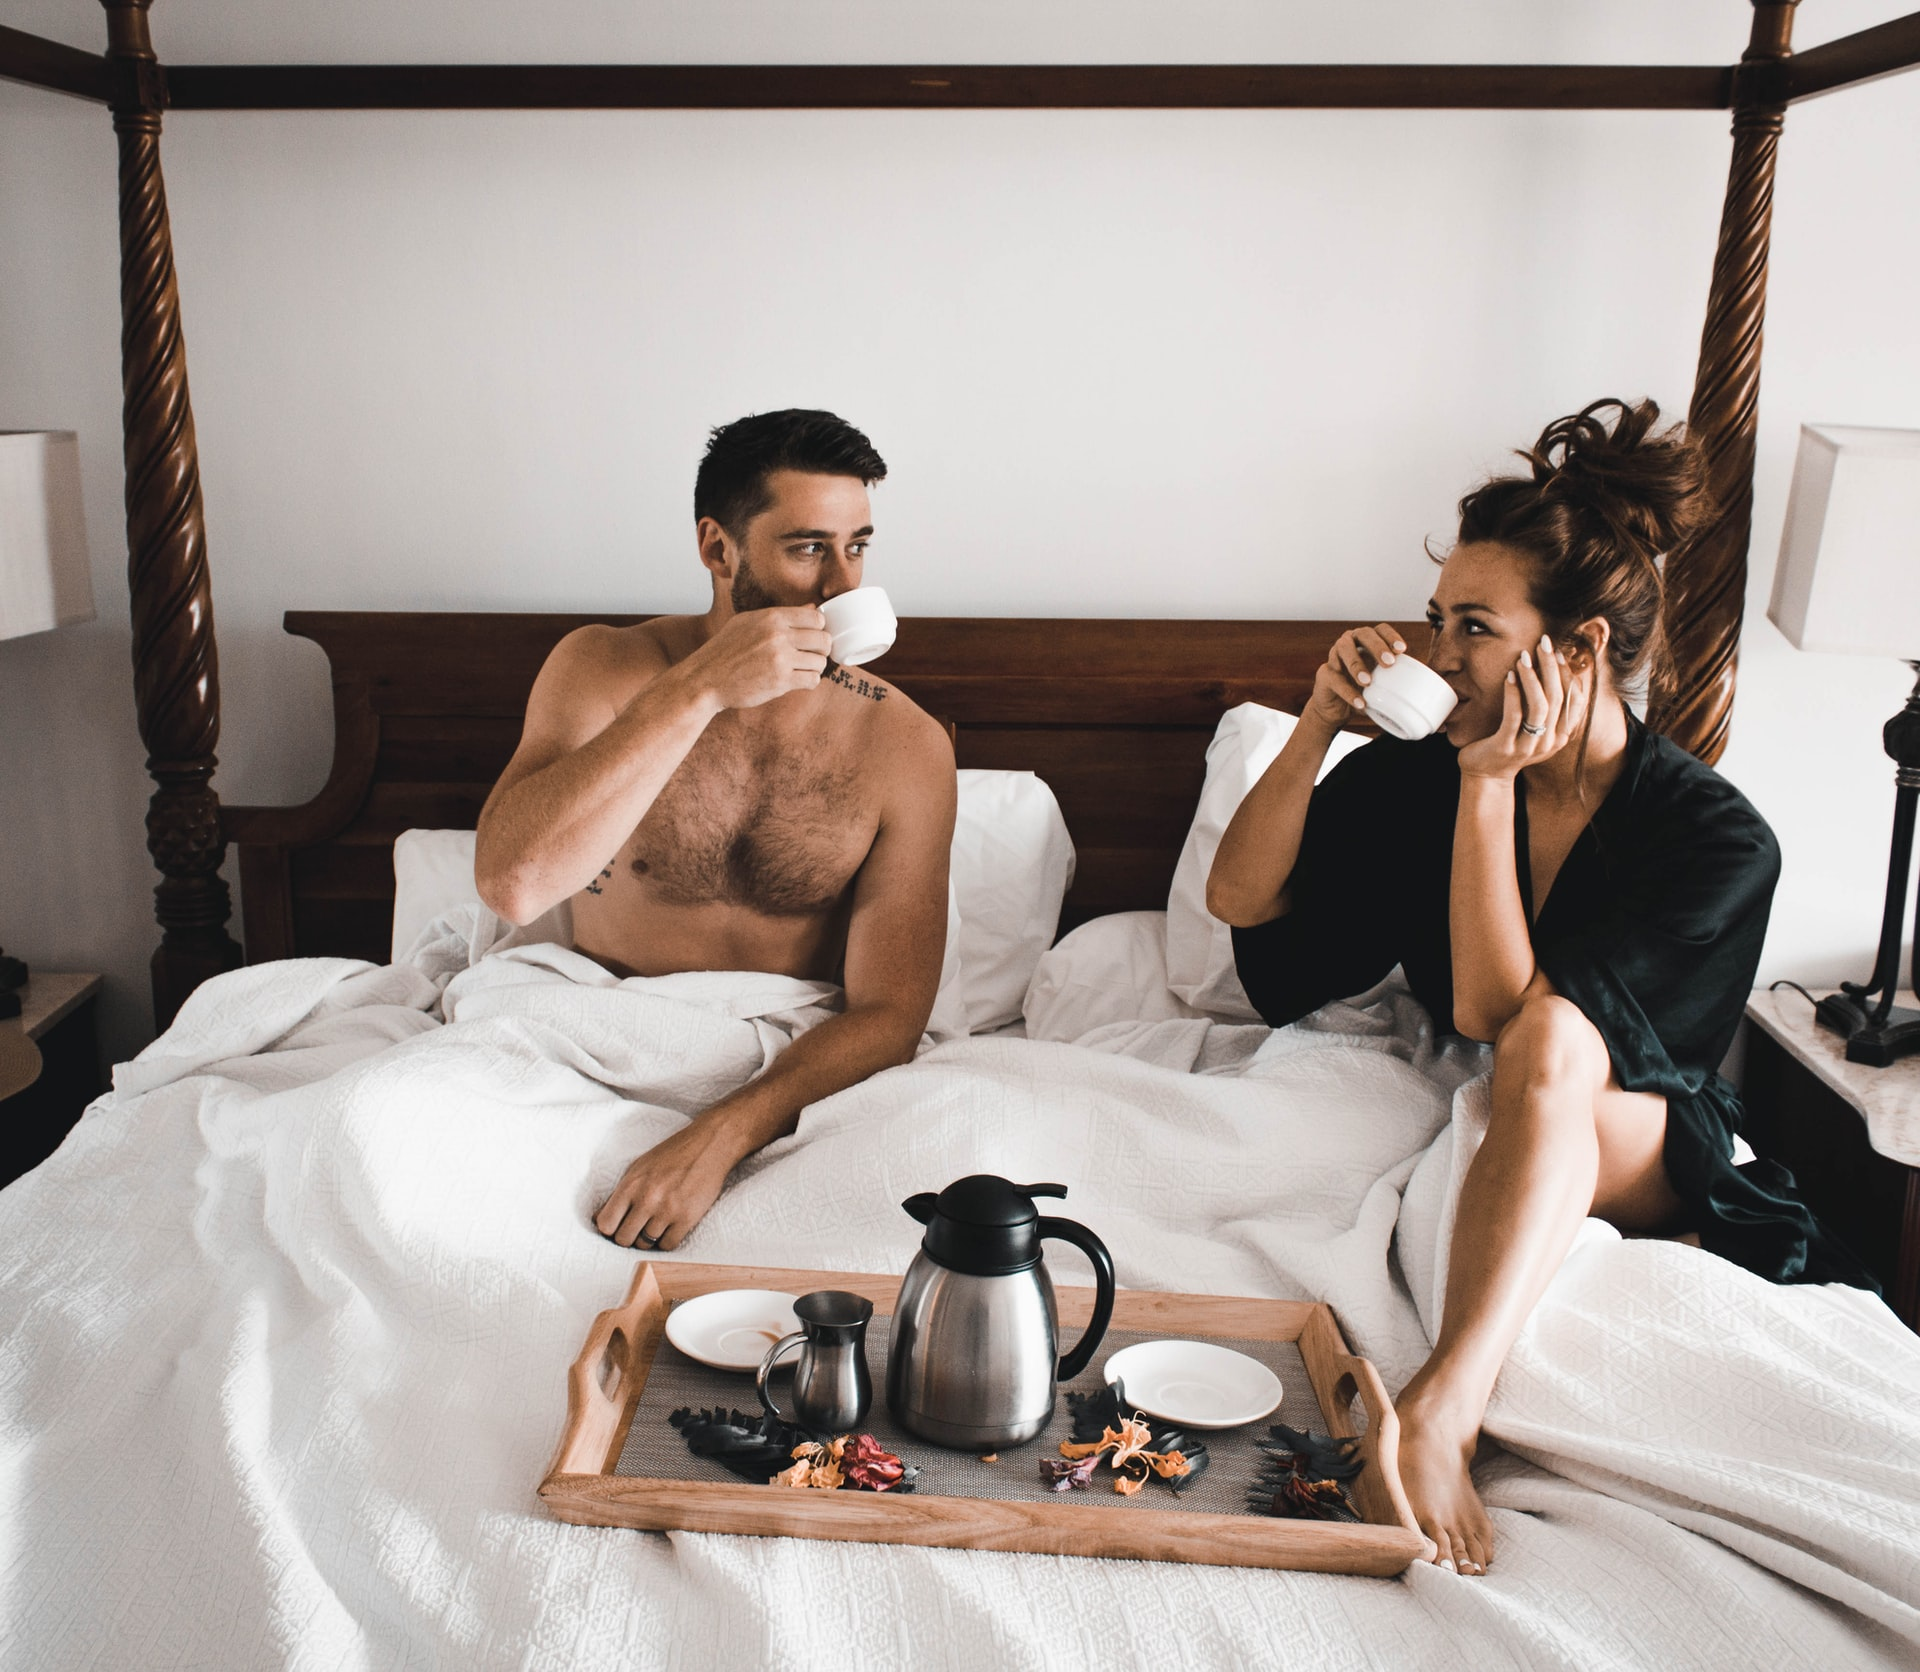 A man and woman drinking coffee in bed